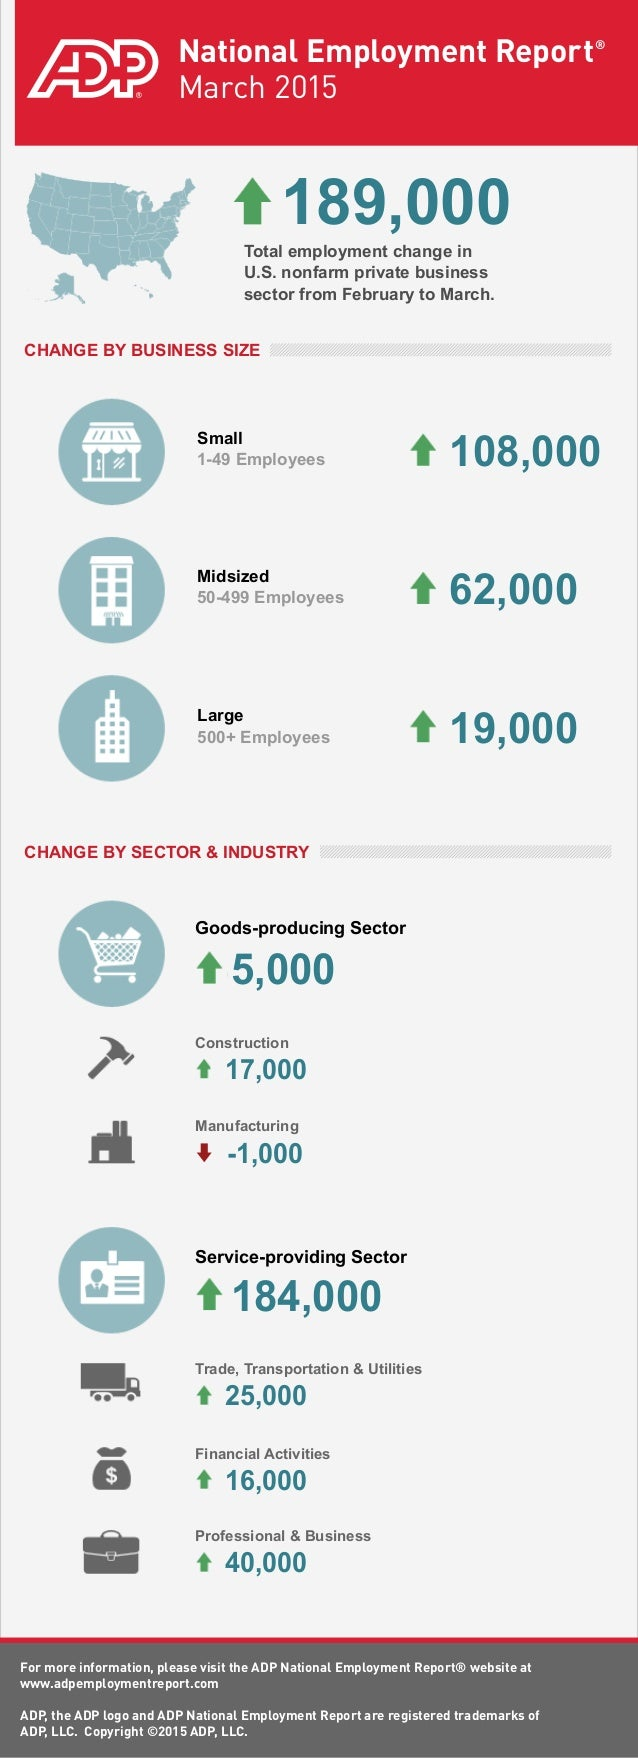 ADP National Employment Report: March 2015